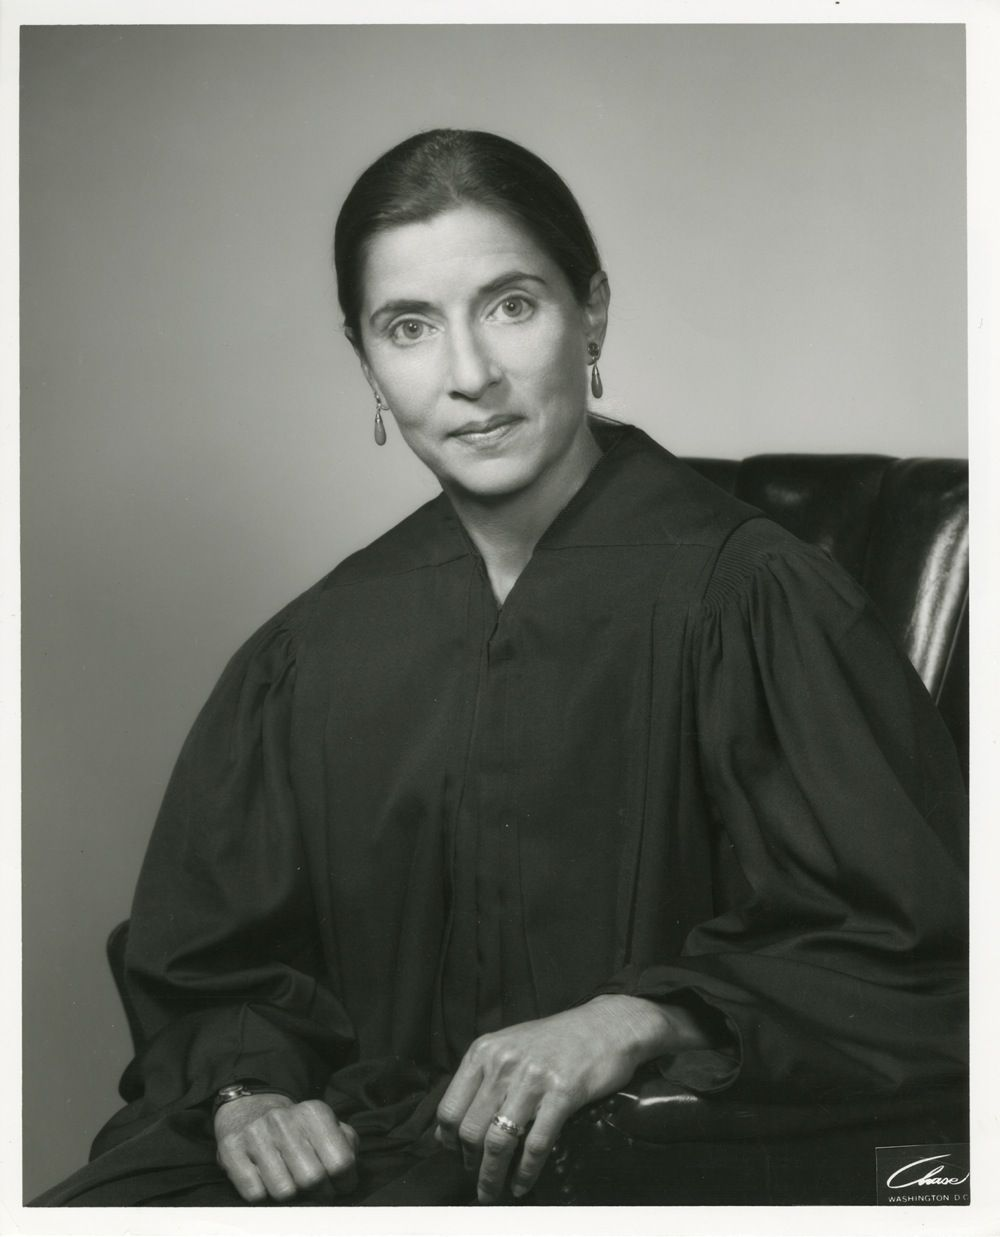 Slide Show Ruth Bader Ginsburg Through The Years Ruth Bader Ginsburg Young Supreme Court Justices Women In History